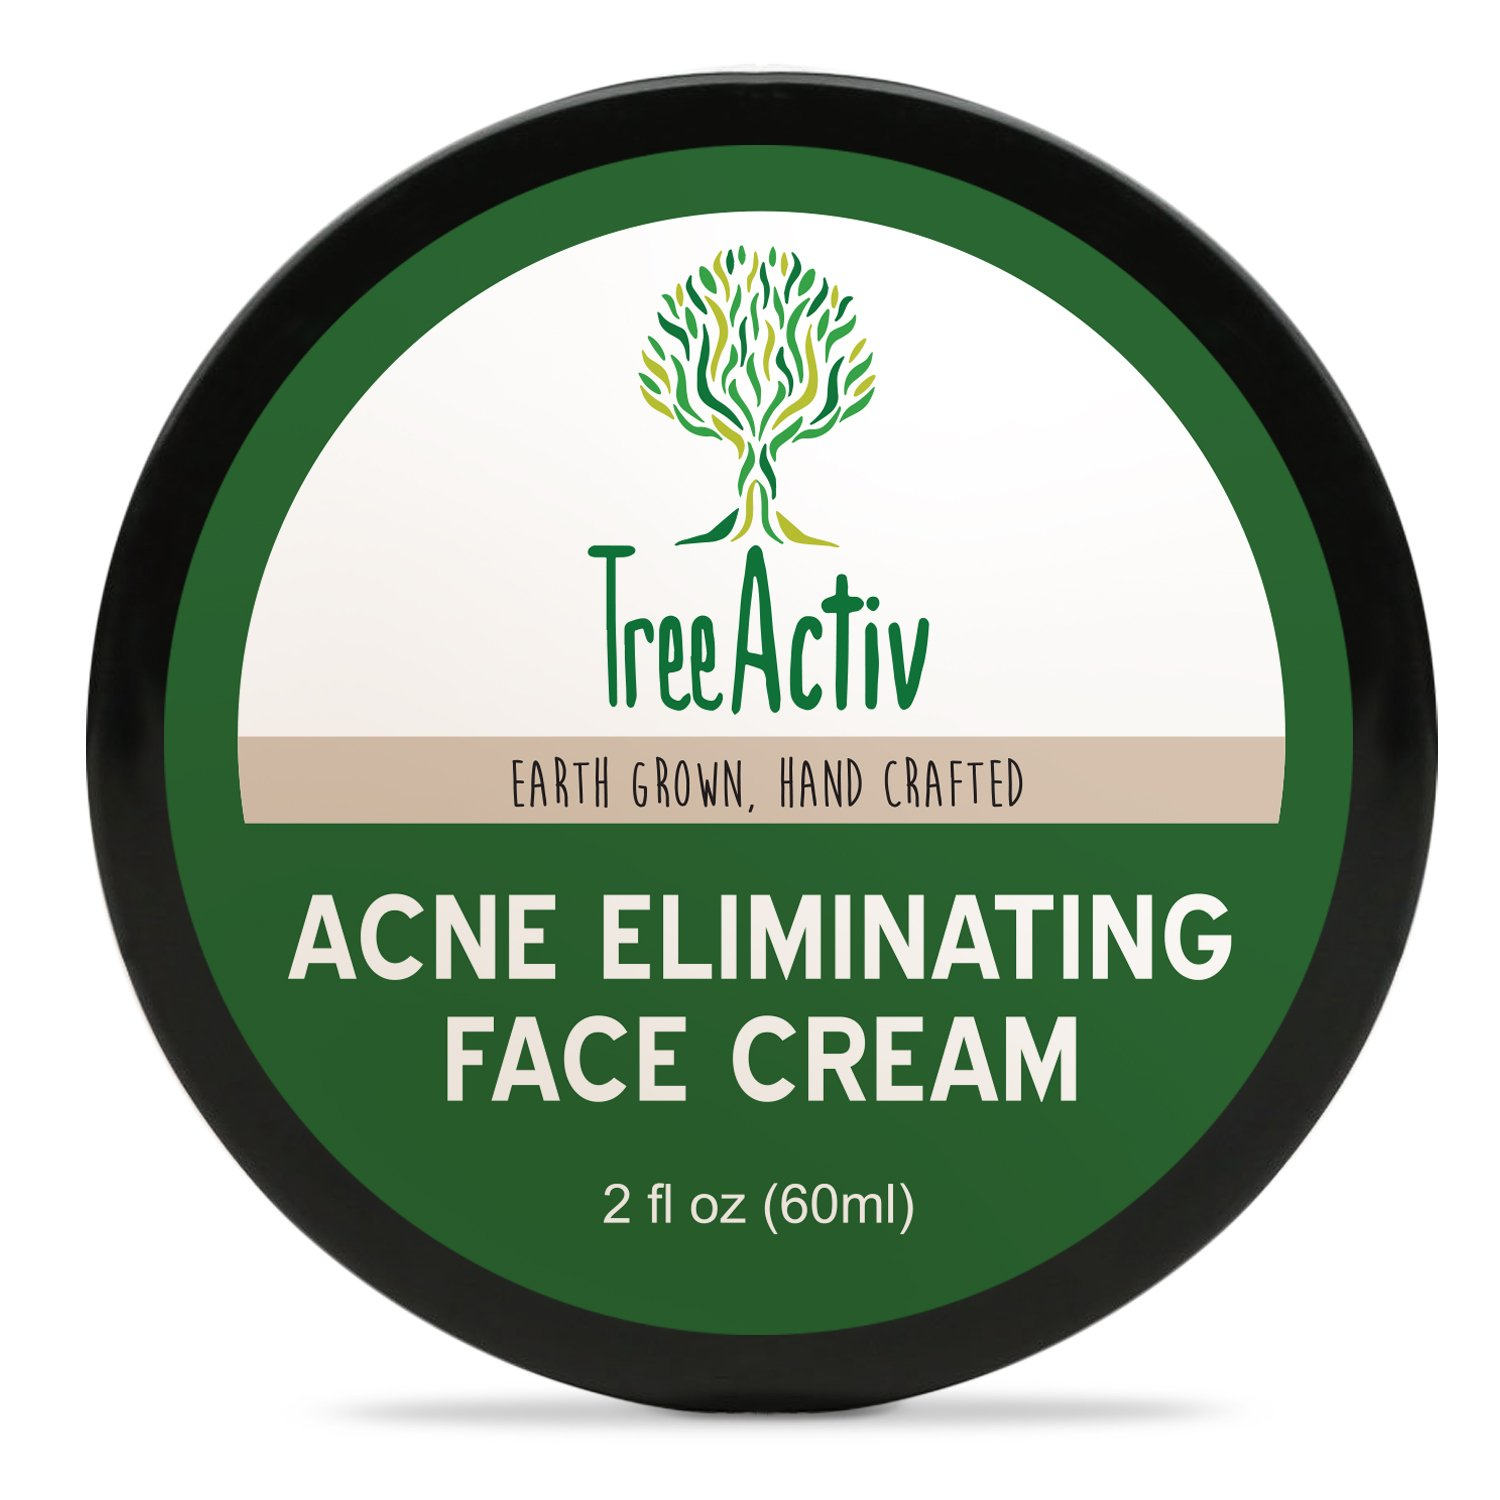 TreeActiv Acne Eliminating Face Cream, Tea Tree Natural Extra Strength Fast Acting Treatment for Clearing Facial Acne, Gentle Enough for Sensitive Skin, Adults, Teens, Men, Women, 2 fl oz by TreeActiv